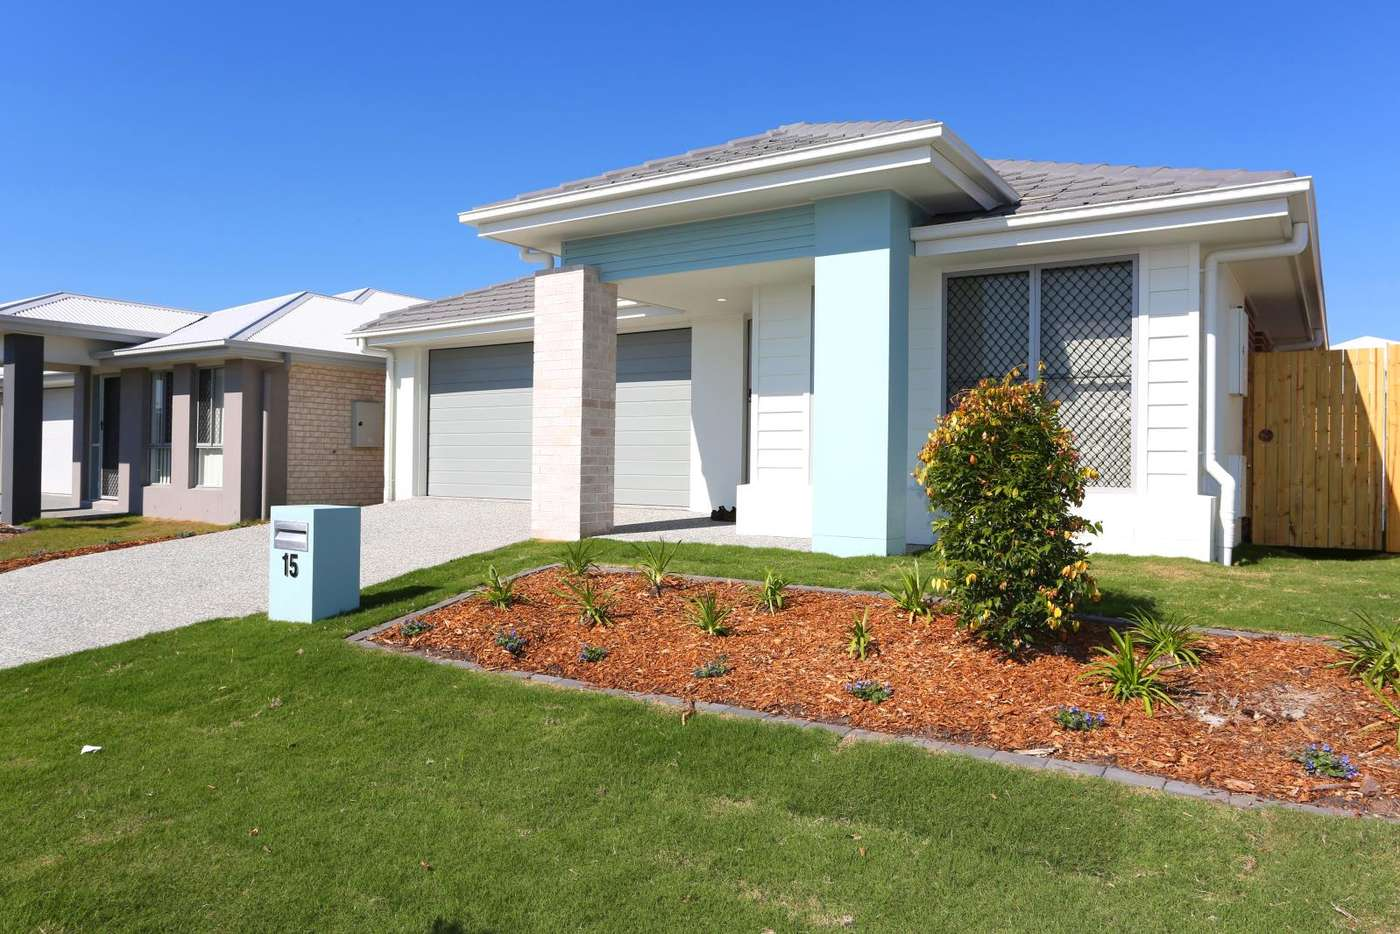 Main view of Homely house listing, 15 Mica Street, Yarrabilba QLD 4207